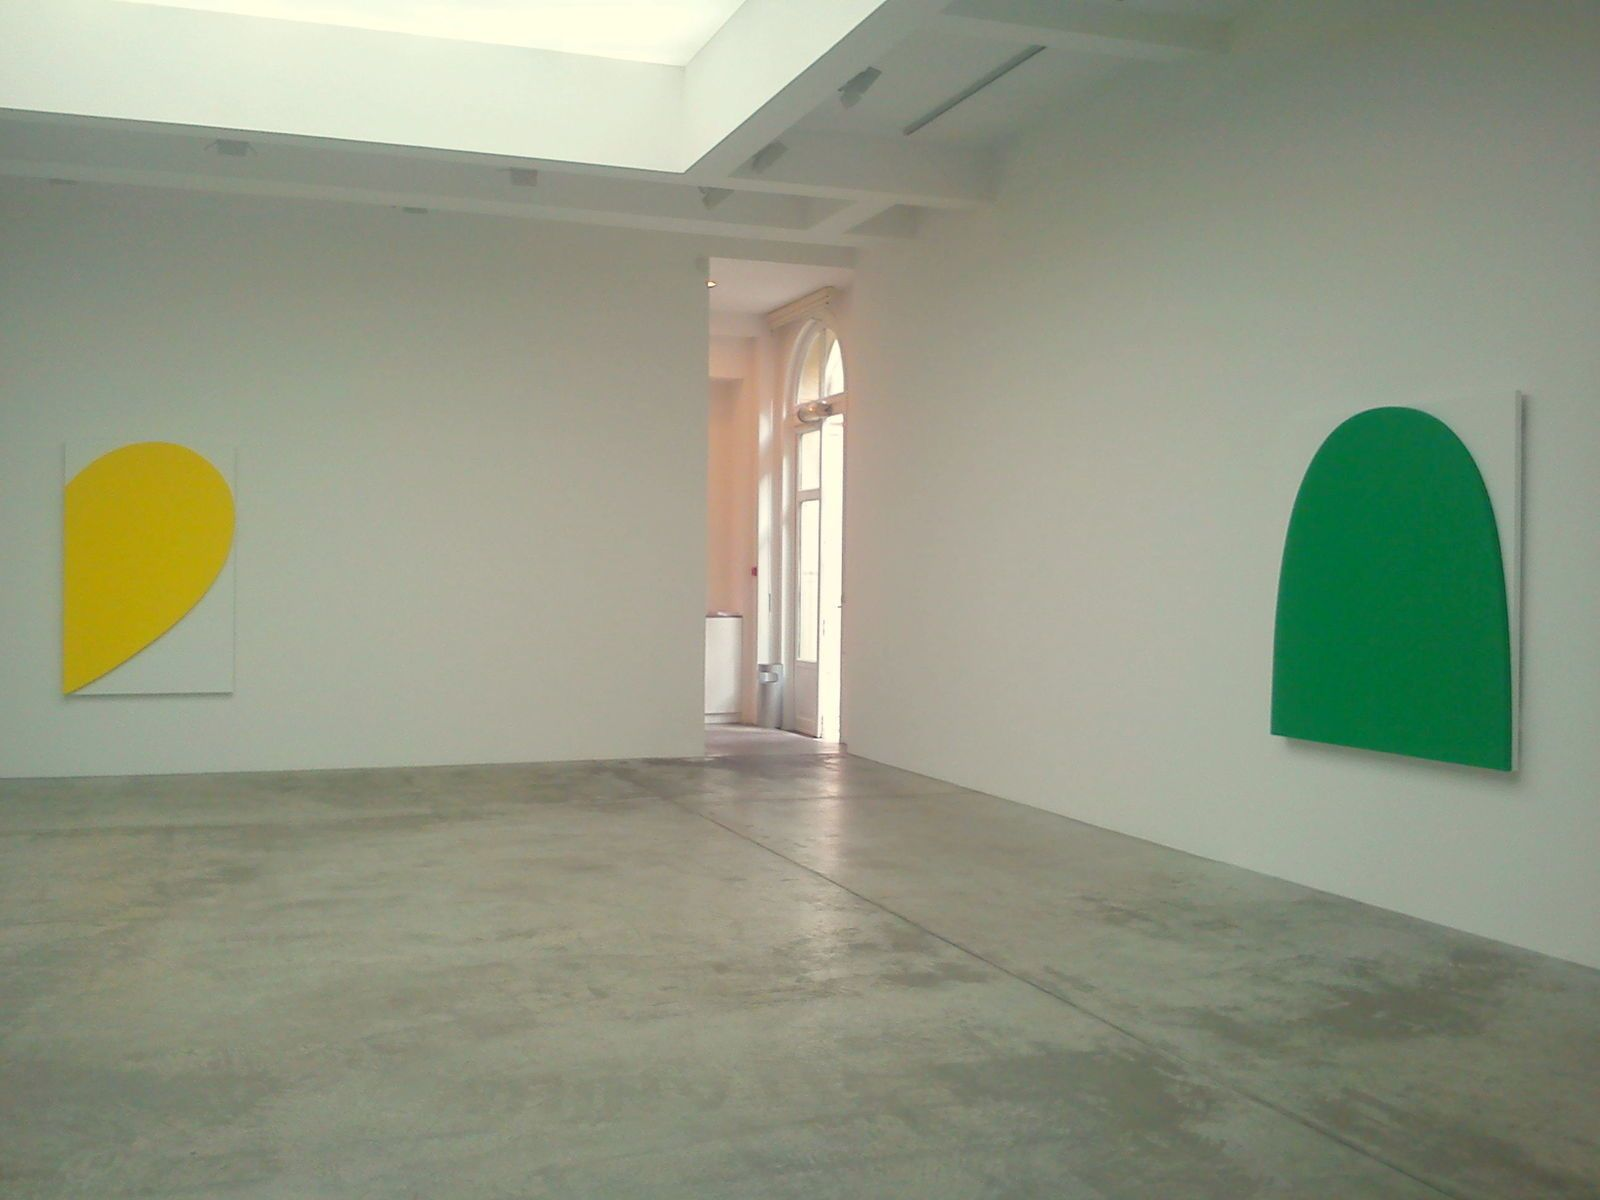 Nouvelle exposition d'Ellsworth Kelly, à la galerie Marian Goodman, Paris